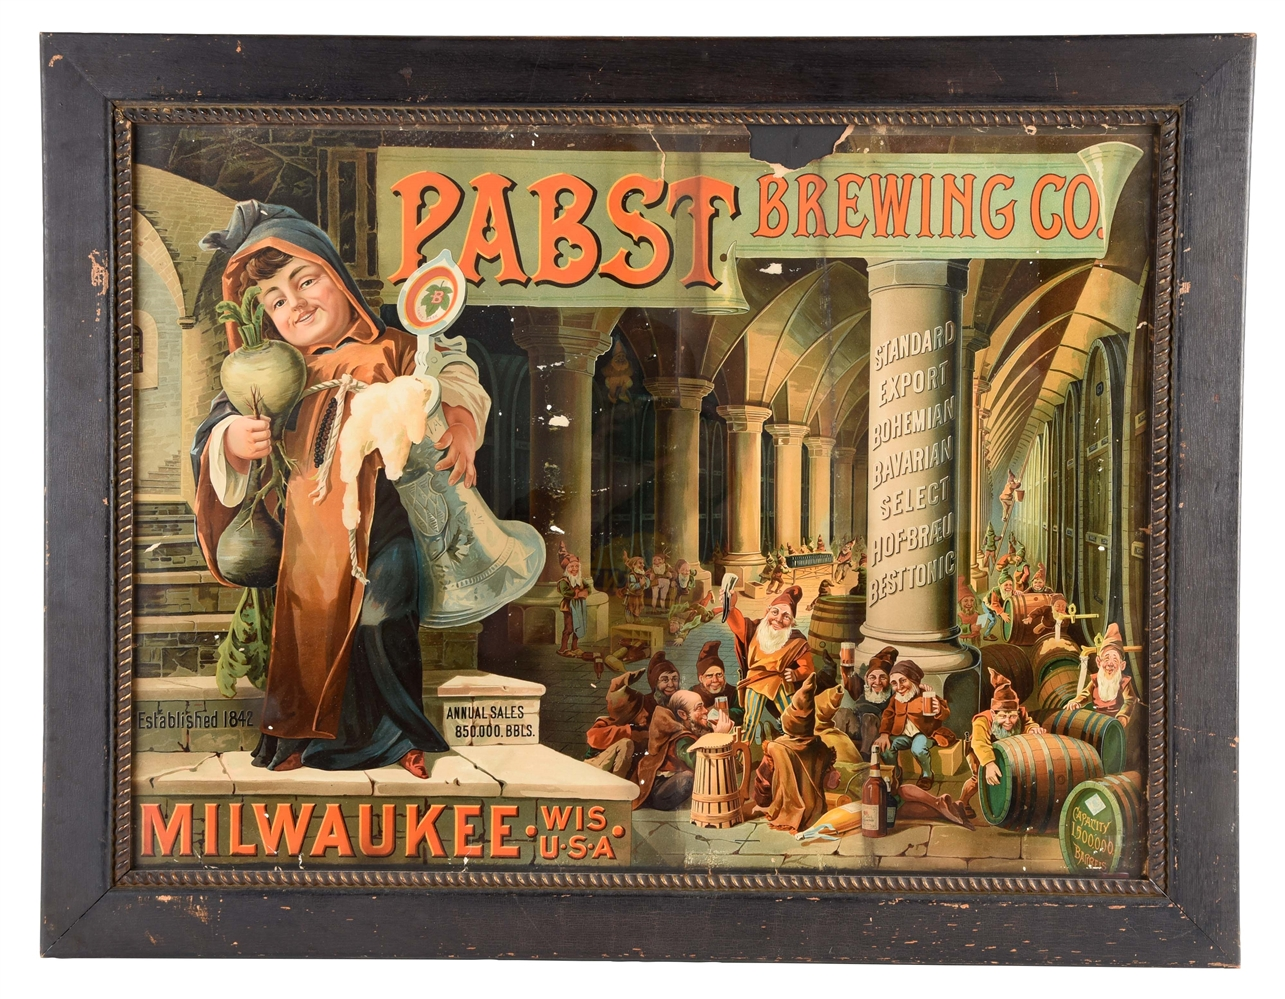 PABST BREWING COMPANY CARDBOARD ADVERTISING SIGN.